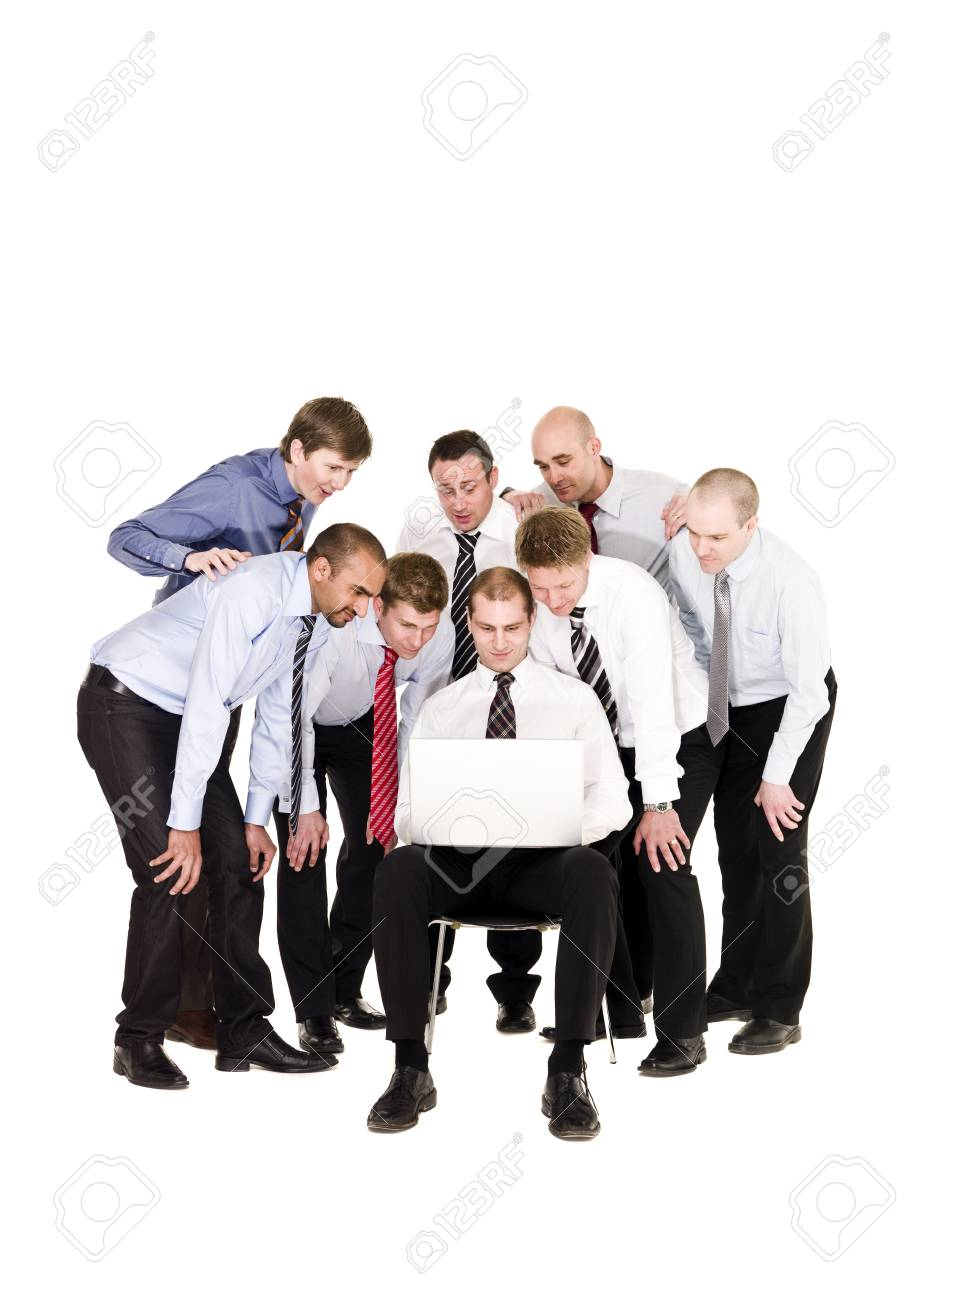 Group of businessmen in front of a laptop isolated on white background Stock Photo - 6878020